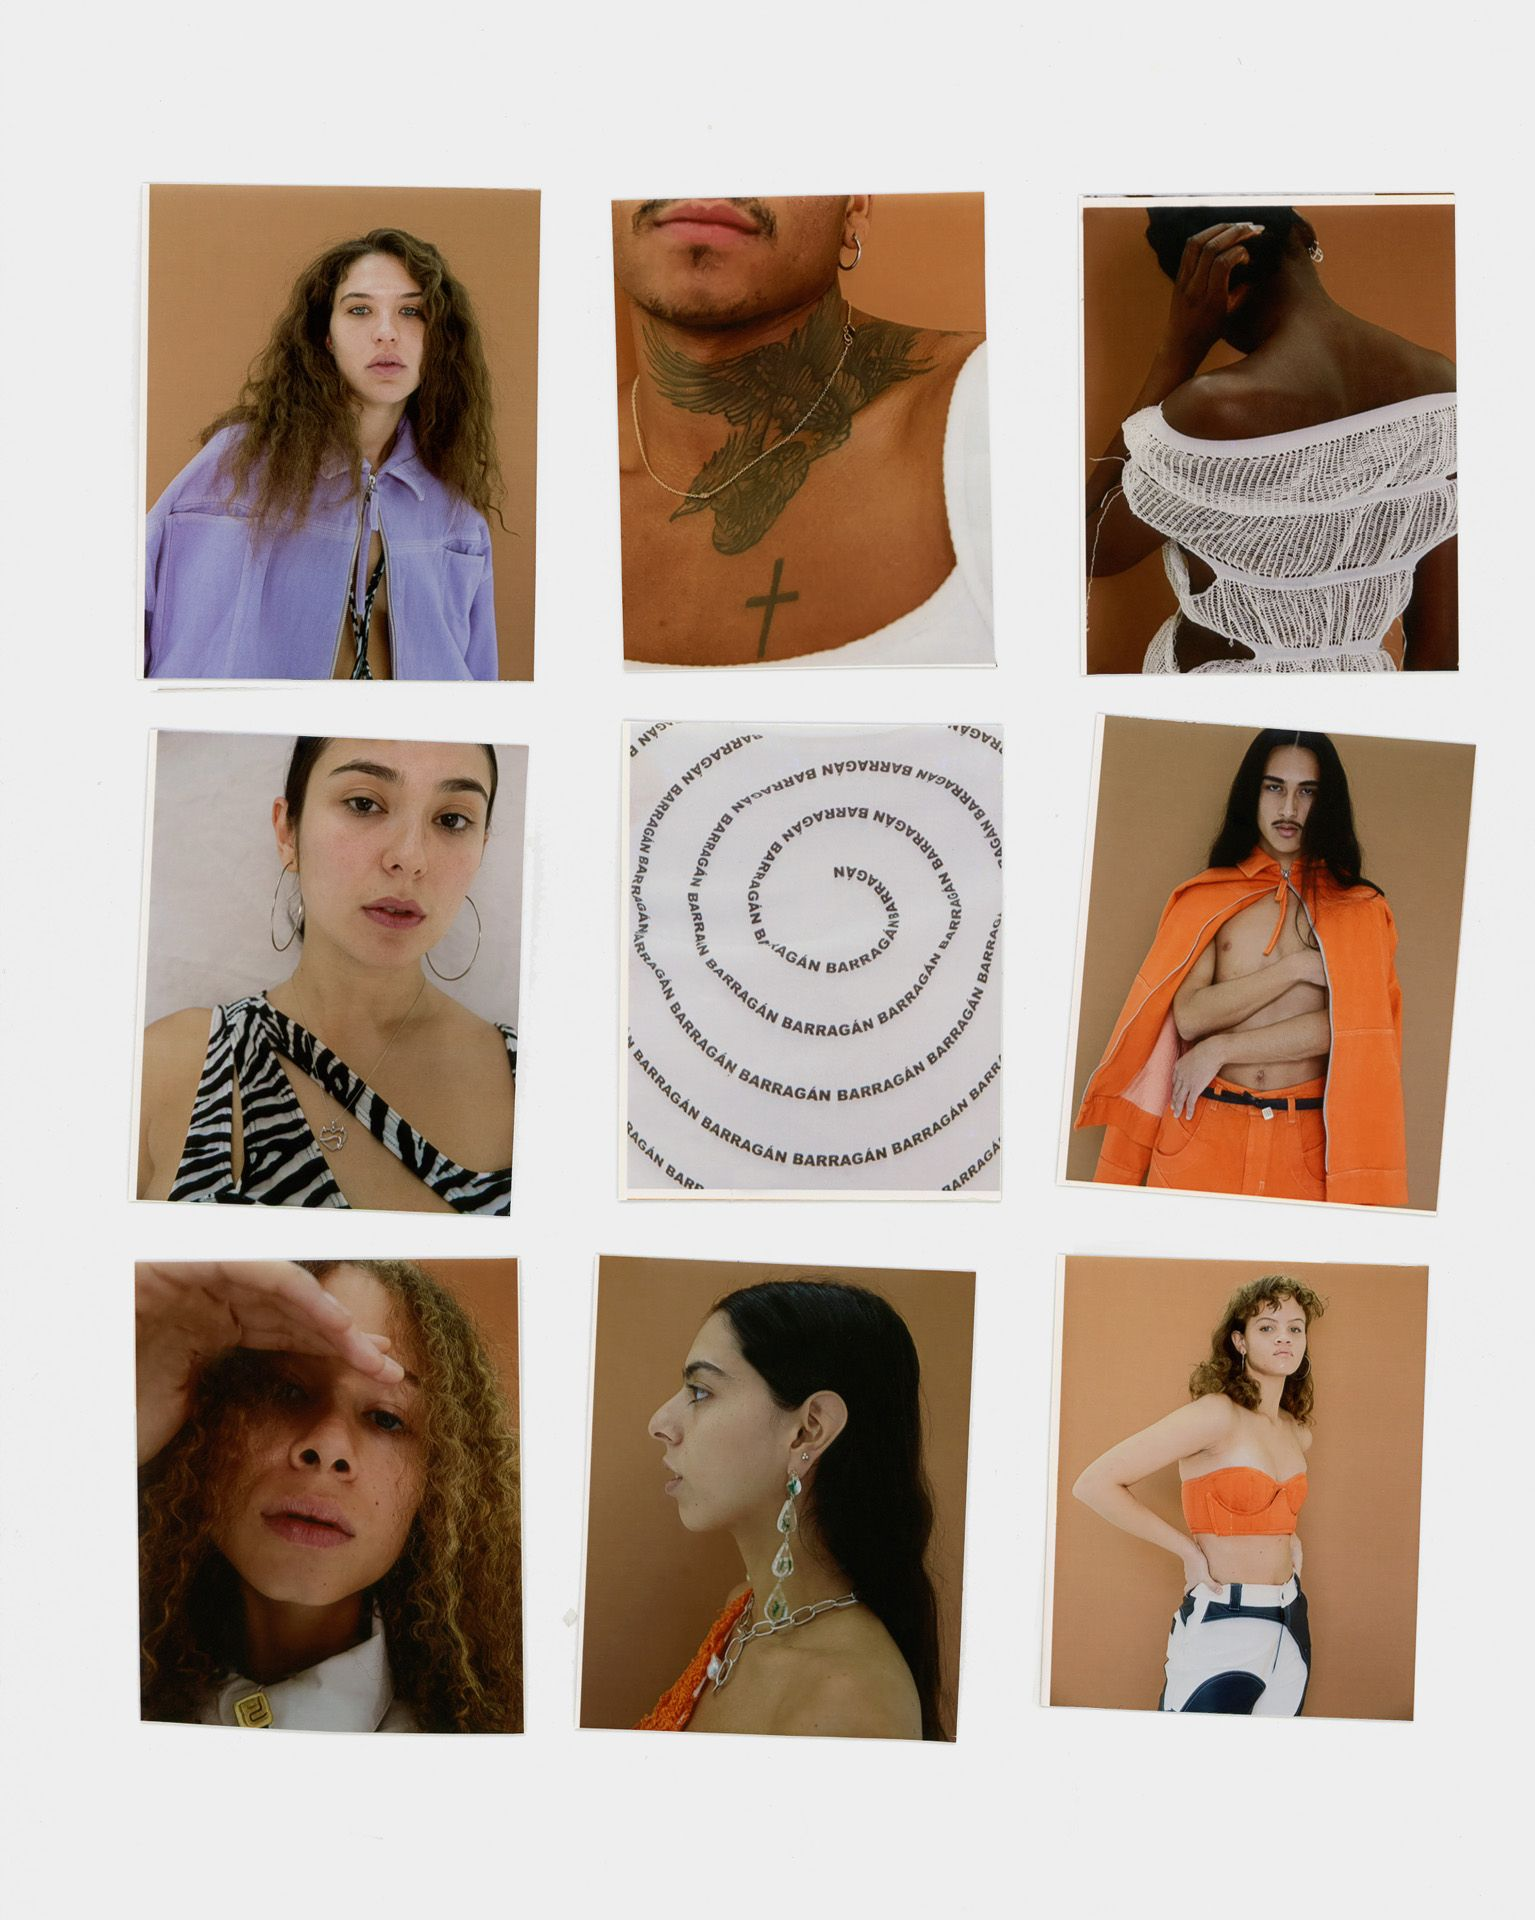 polaroids of models by Oumayma B Tanfous for Barragannnn casting ss 20 for Document Journal